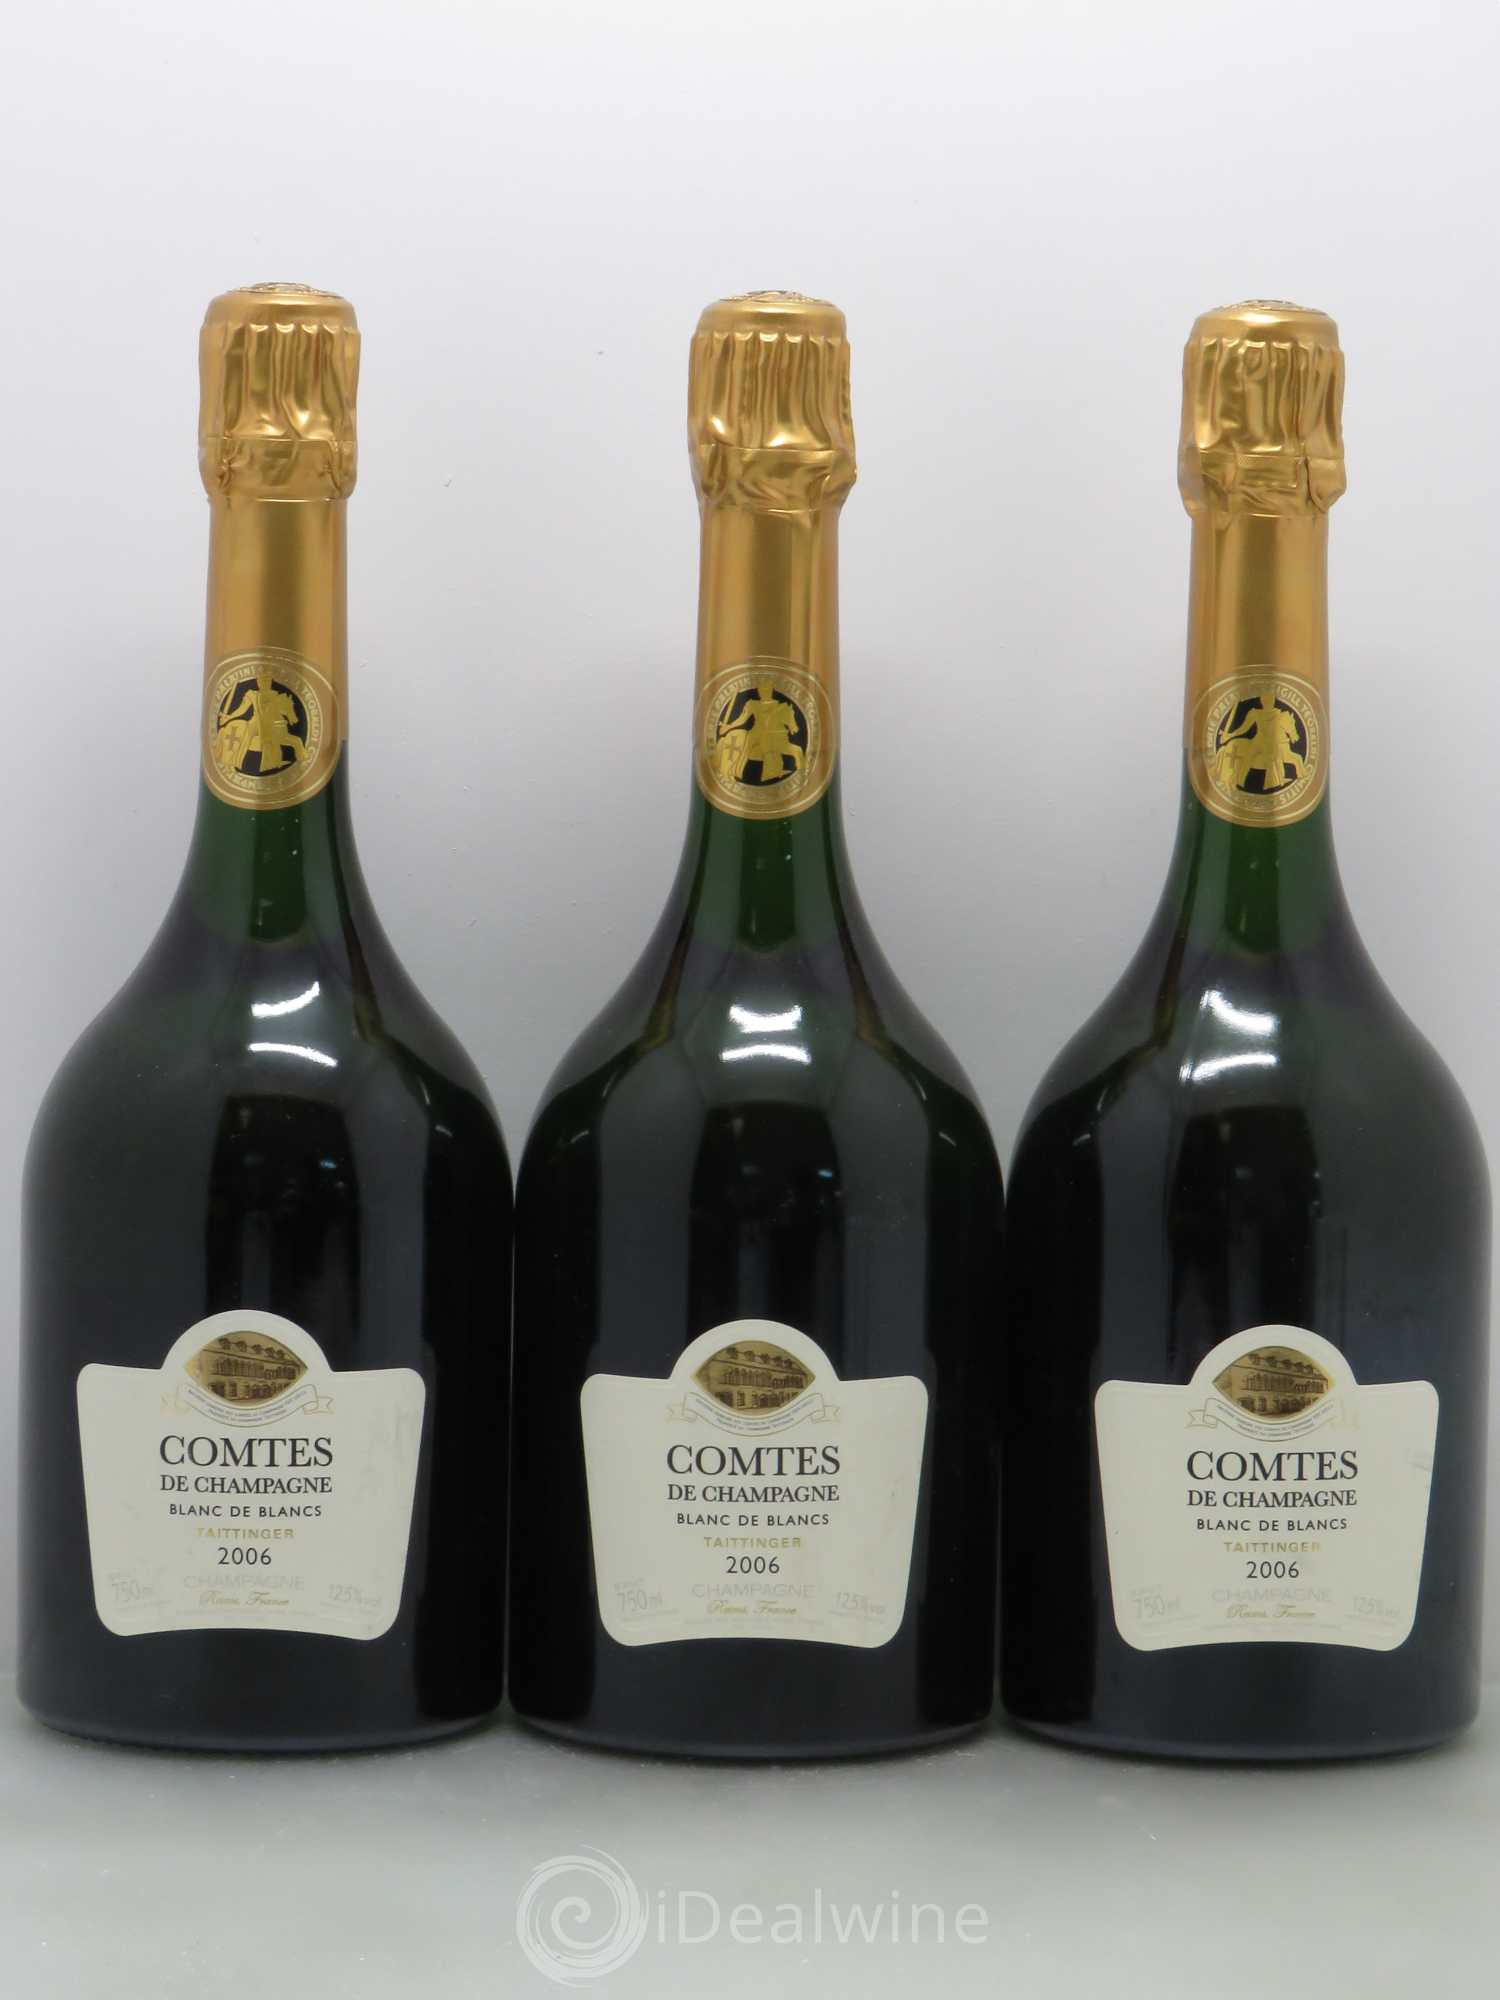 acheter comtes de champagne champagne taittinger 2006 lot 2044. Black Bedroom Furniture Sets. Home Design Ideas